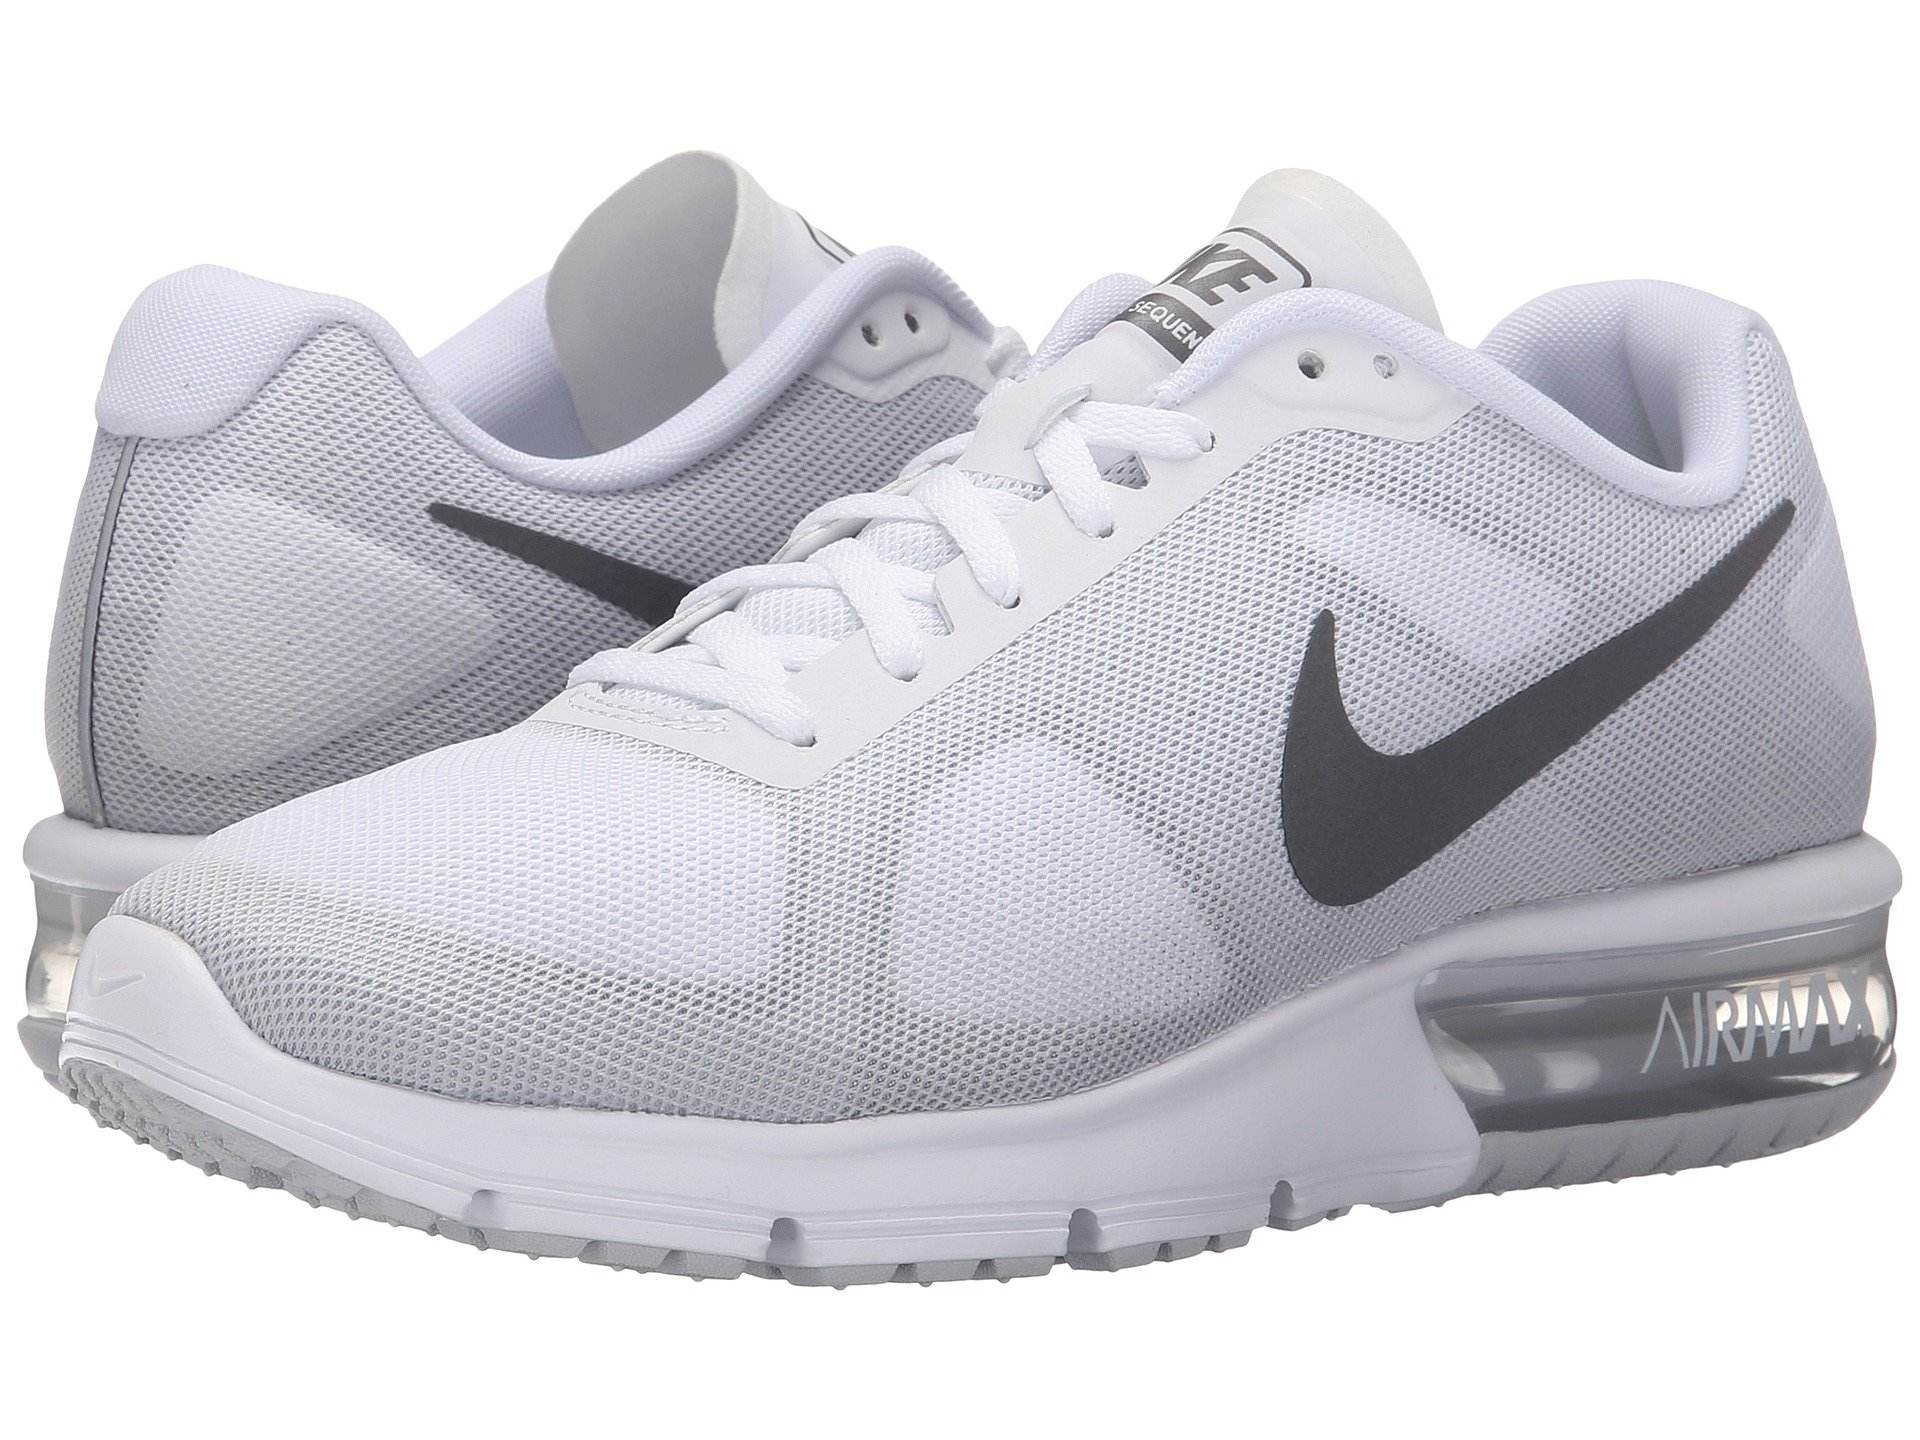 nike air max sequent at 6pm. Black Bedroom Furniture Sets. Home Design Ideas